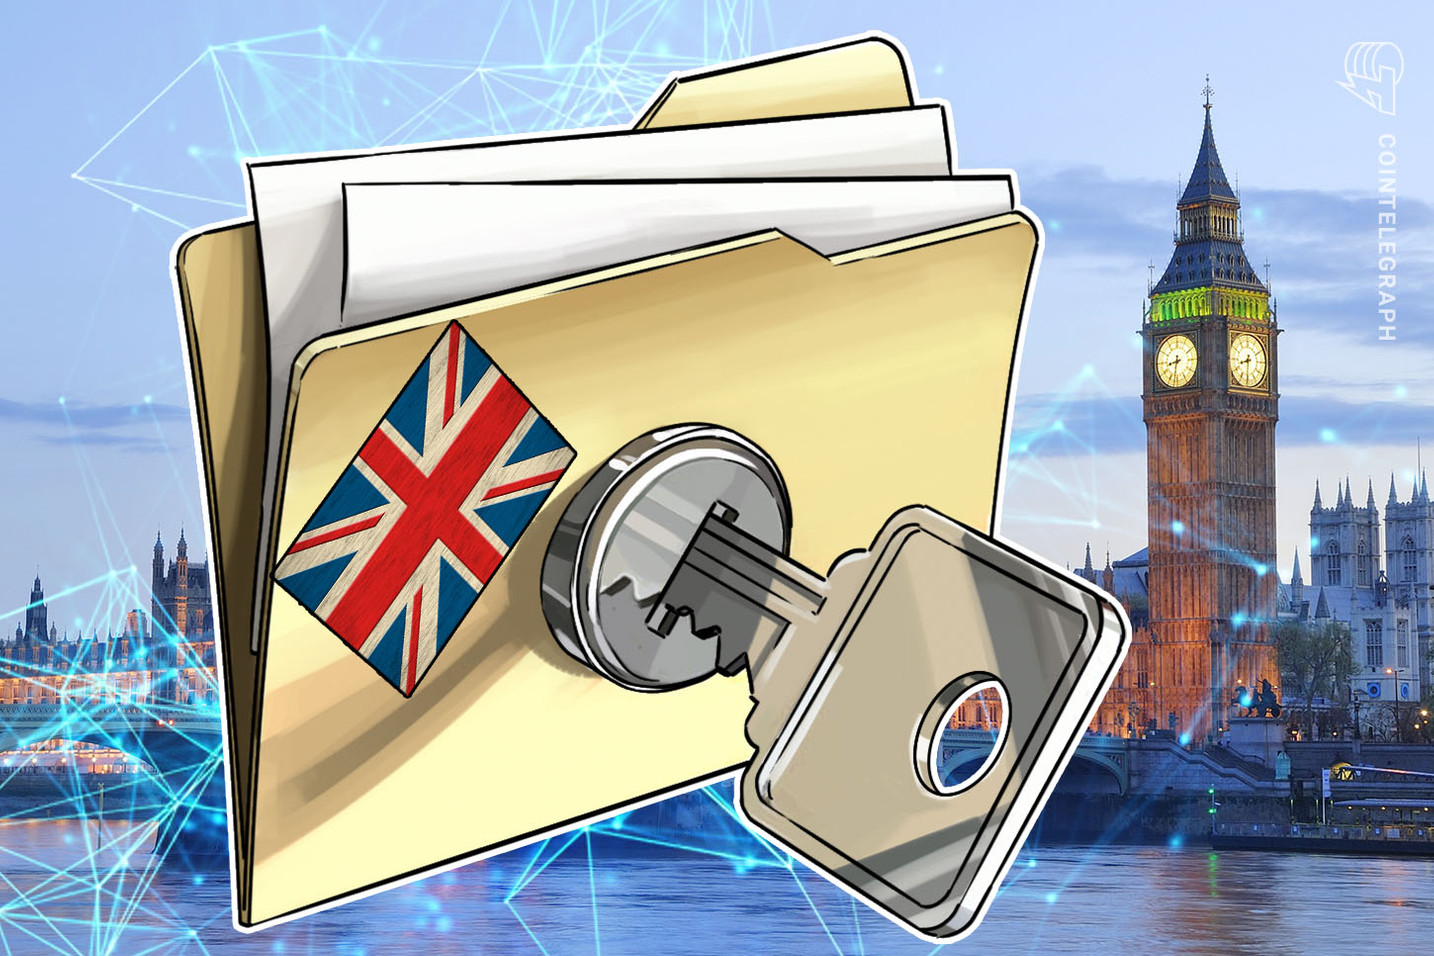 UK Pension and Welfare Agency Examining Blockchain and DLT